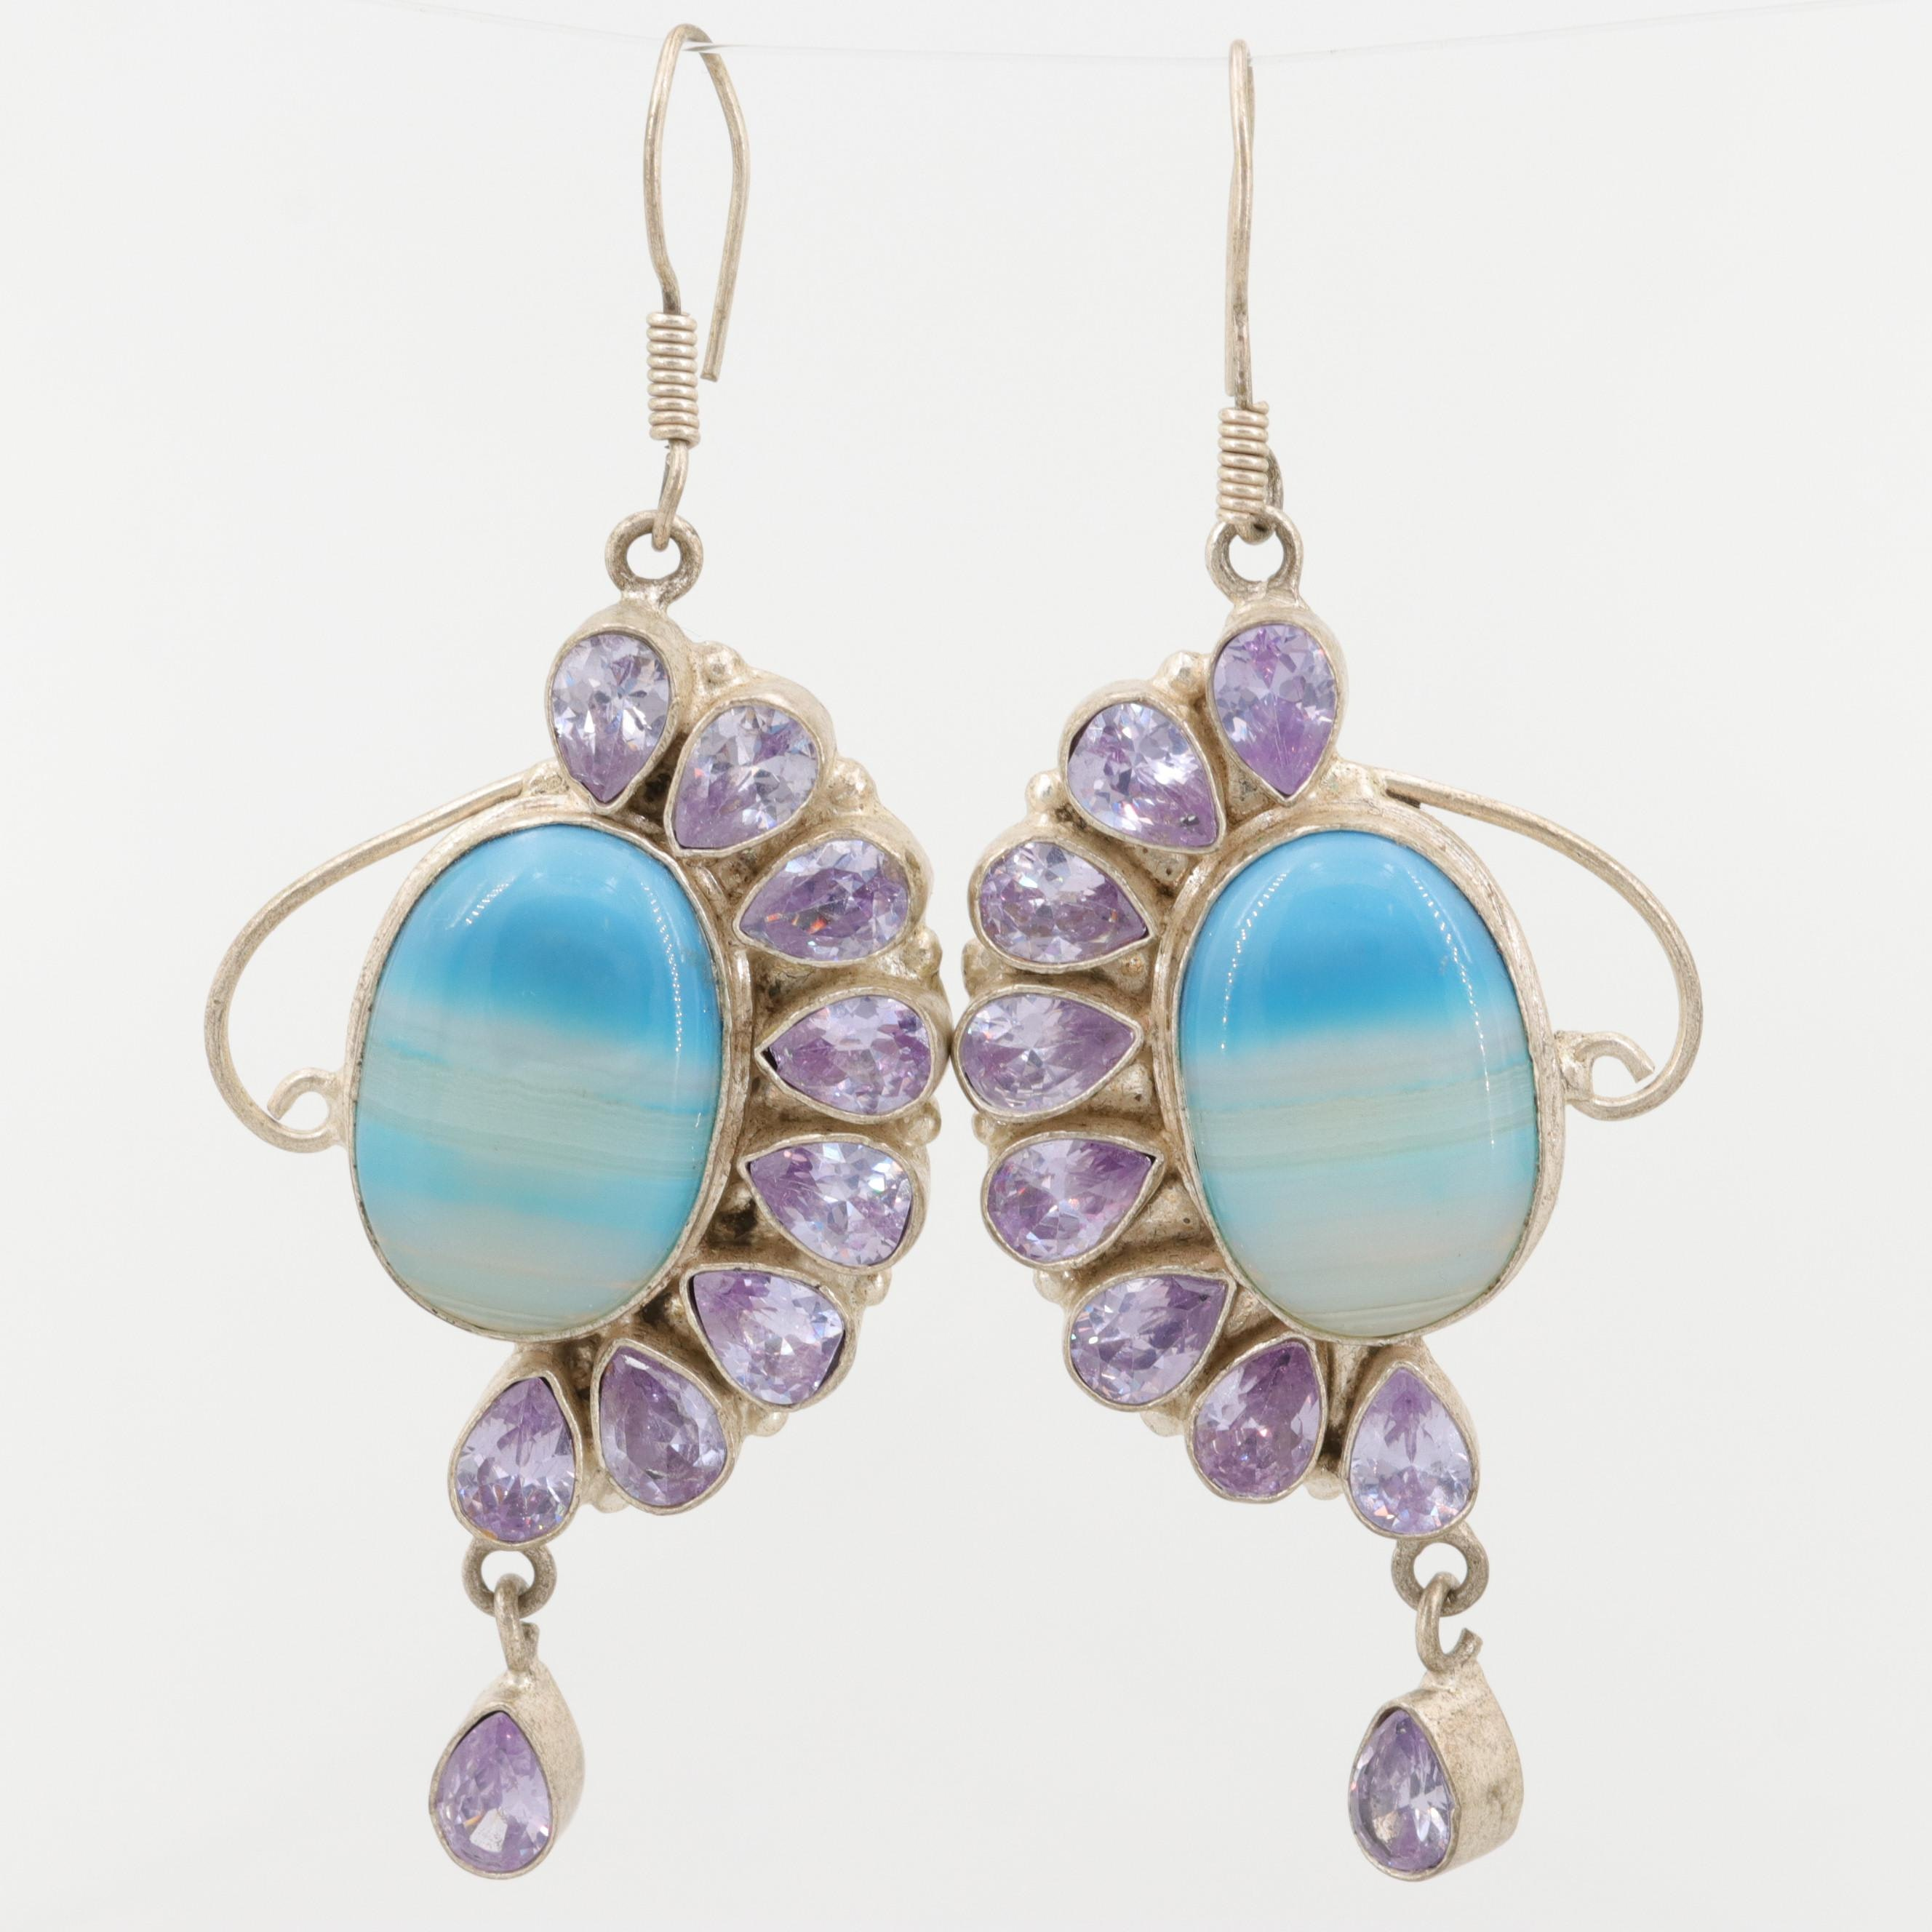 Sterling Silver and Silver Tone Dyed Agate and Cubic Zirconia Earrings